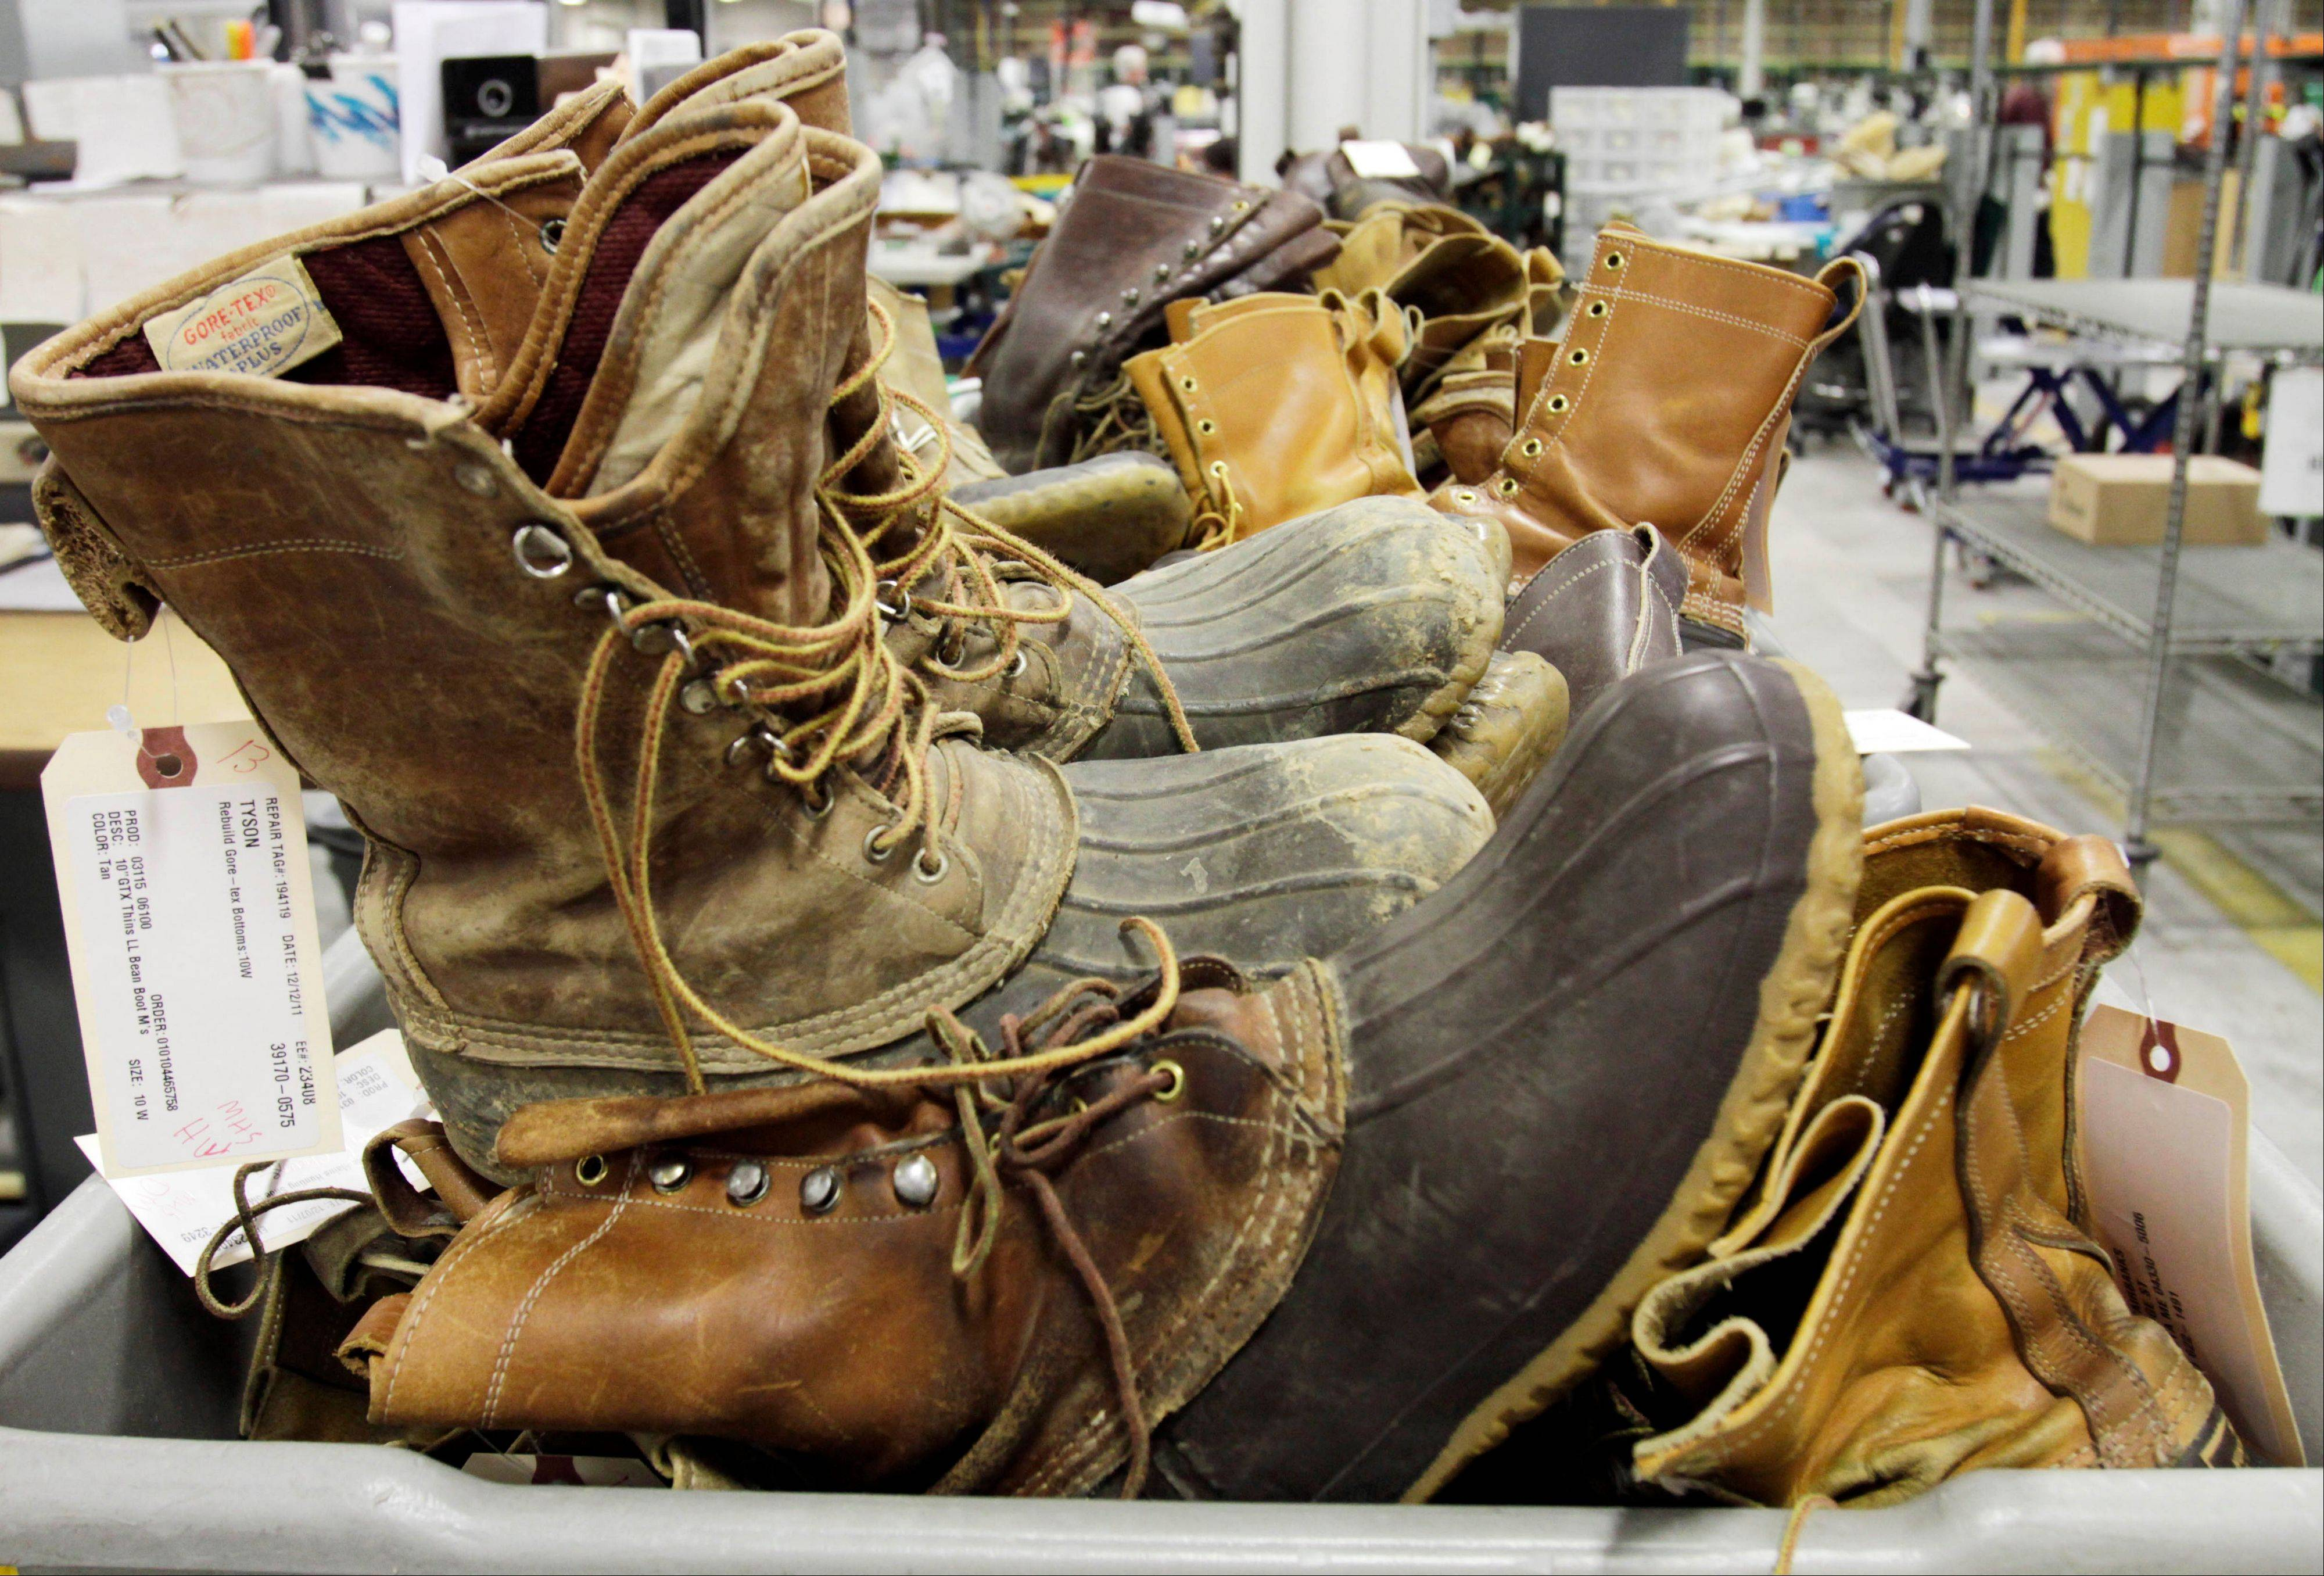 Famed outfitter L.L. Bean is celebrating its 100th anniversary this year.